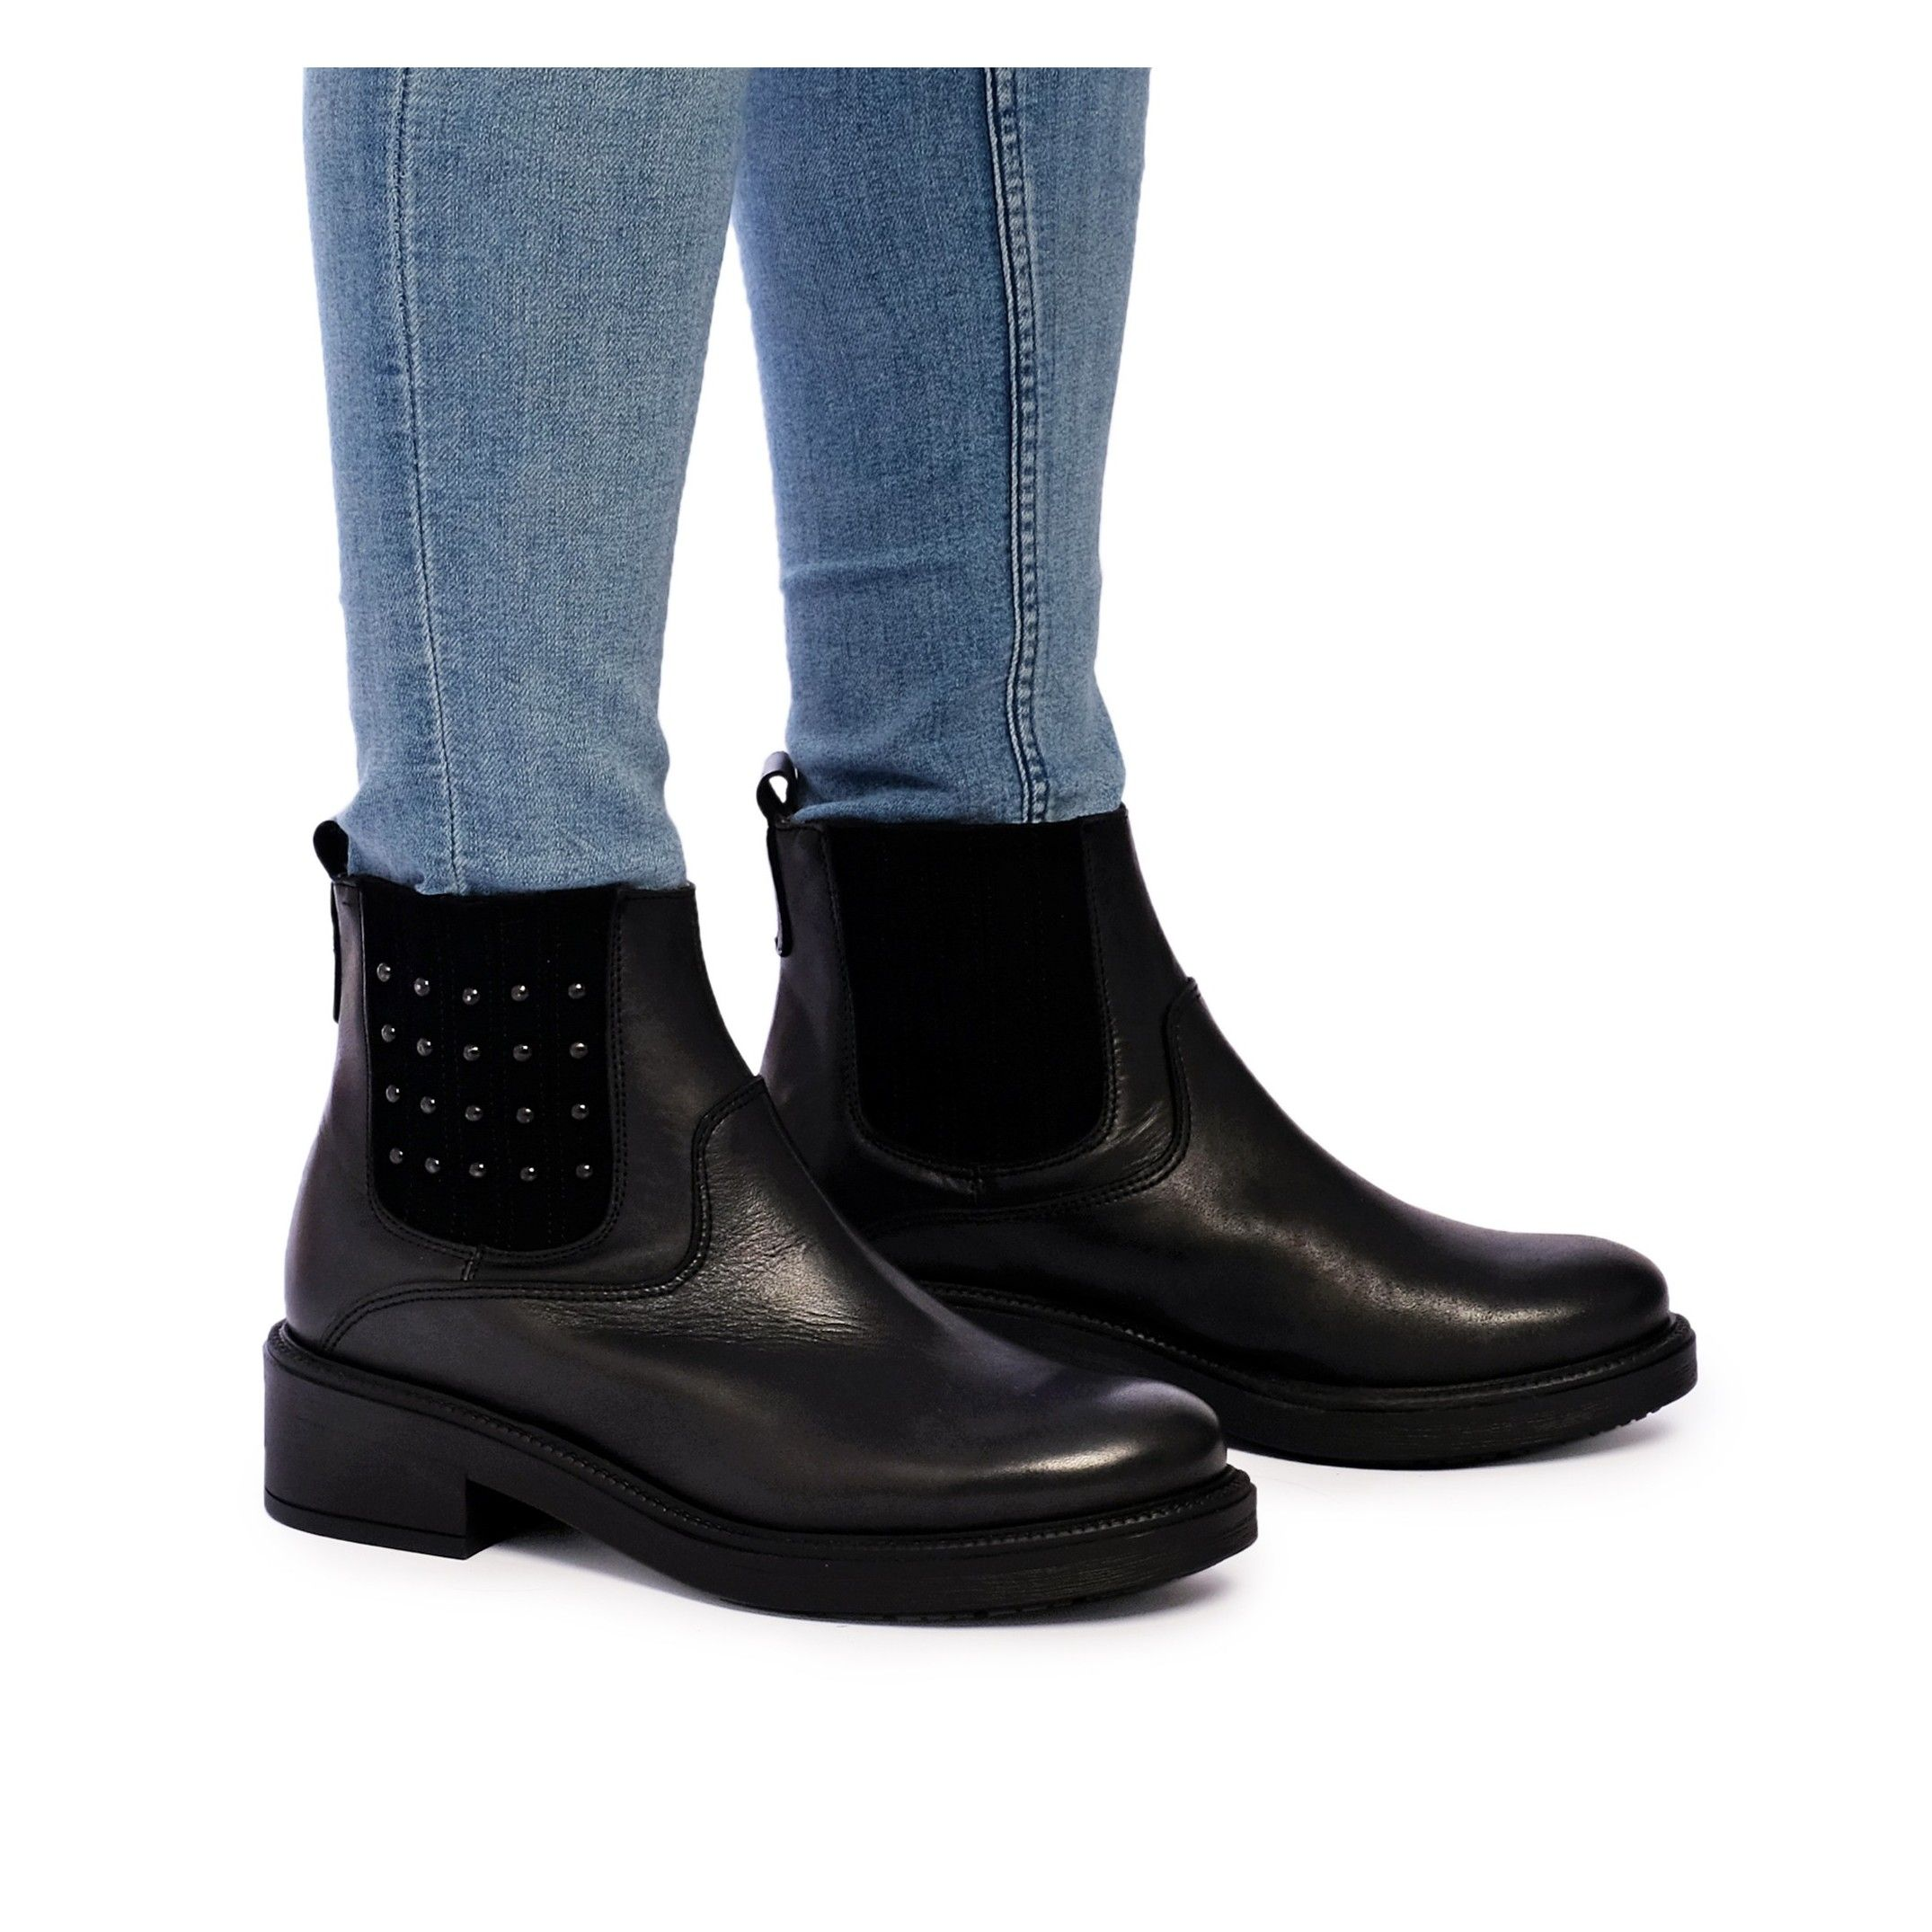 María Barceló Leather Ankle Chelsea Boots Black Color Women